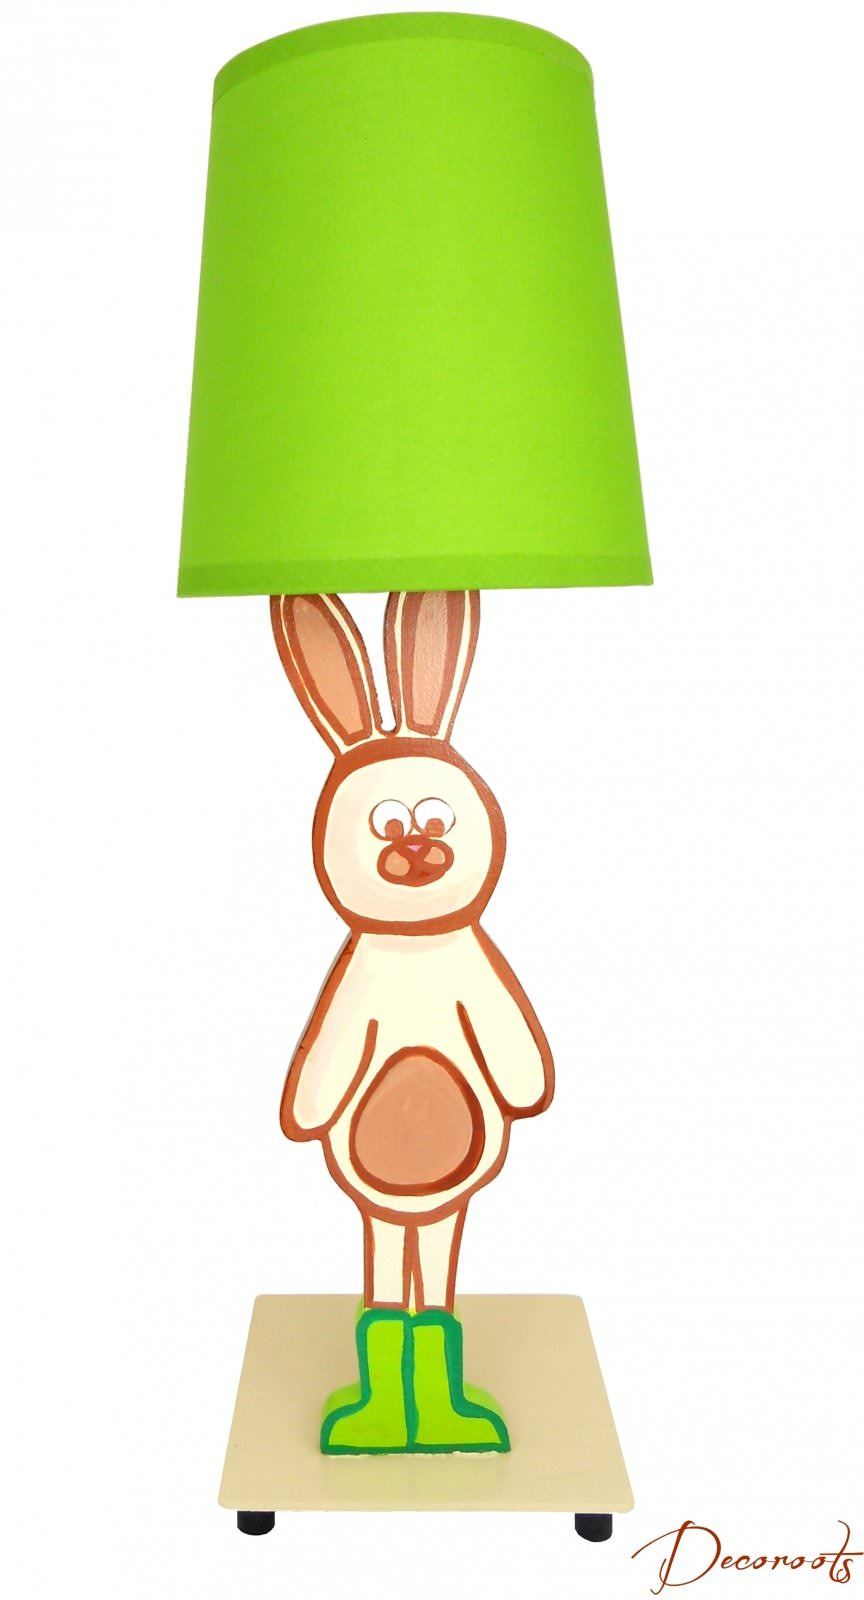 Lampe de chevet enfant b b lapin nature for t beige vert for Lampe de chevet lapin